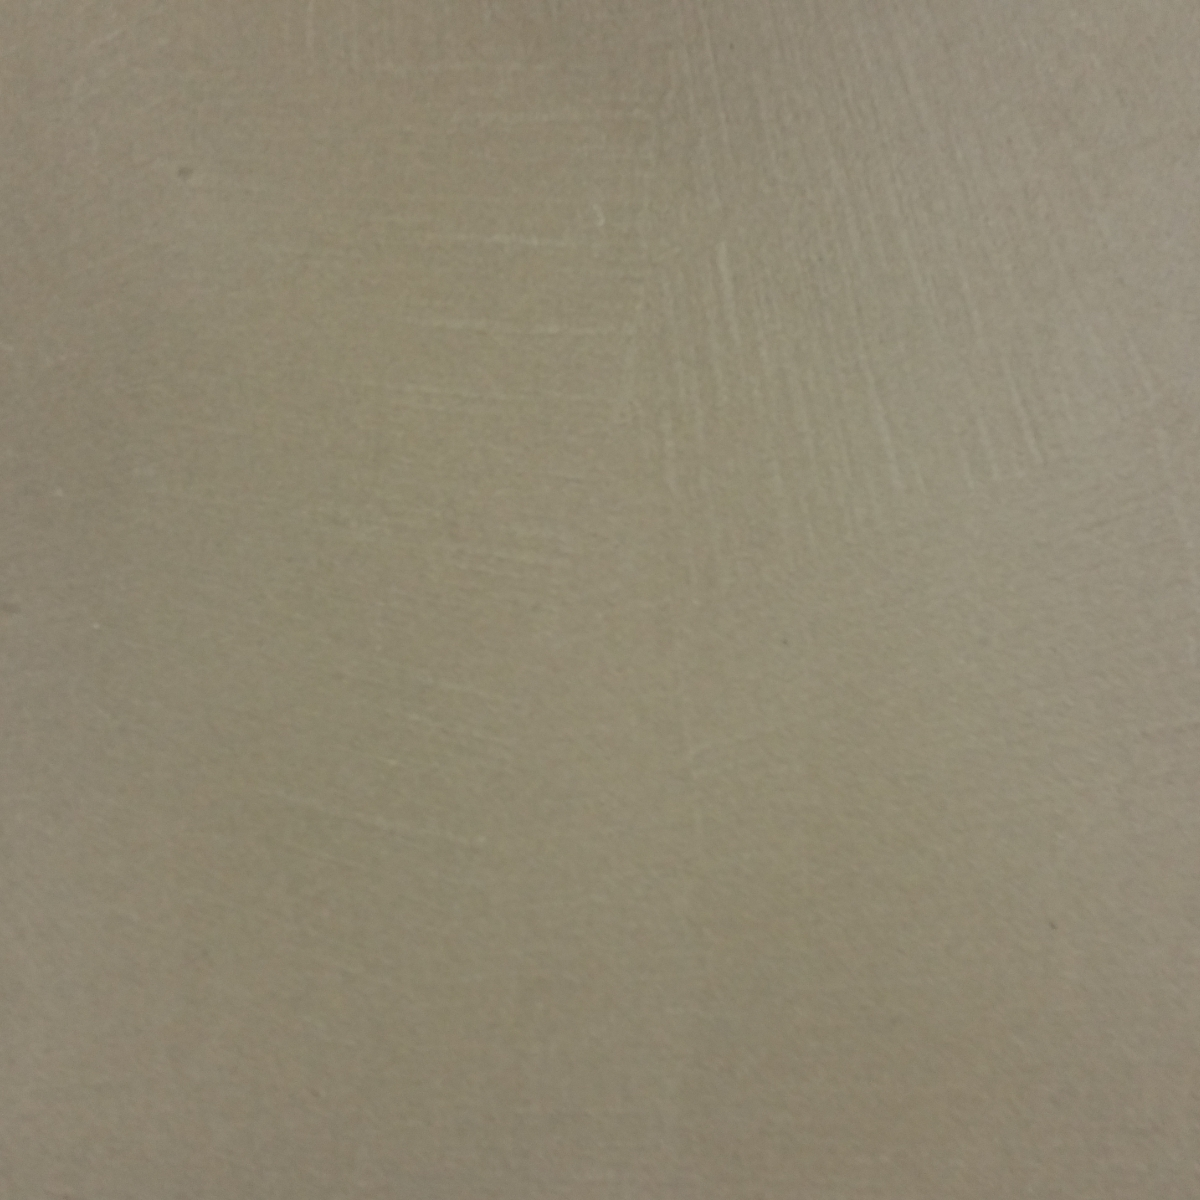 Havanna satin finish